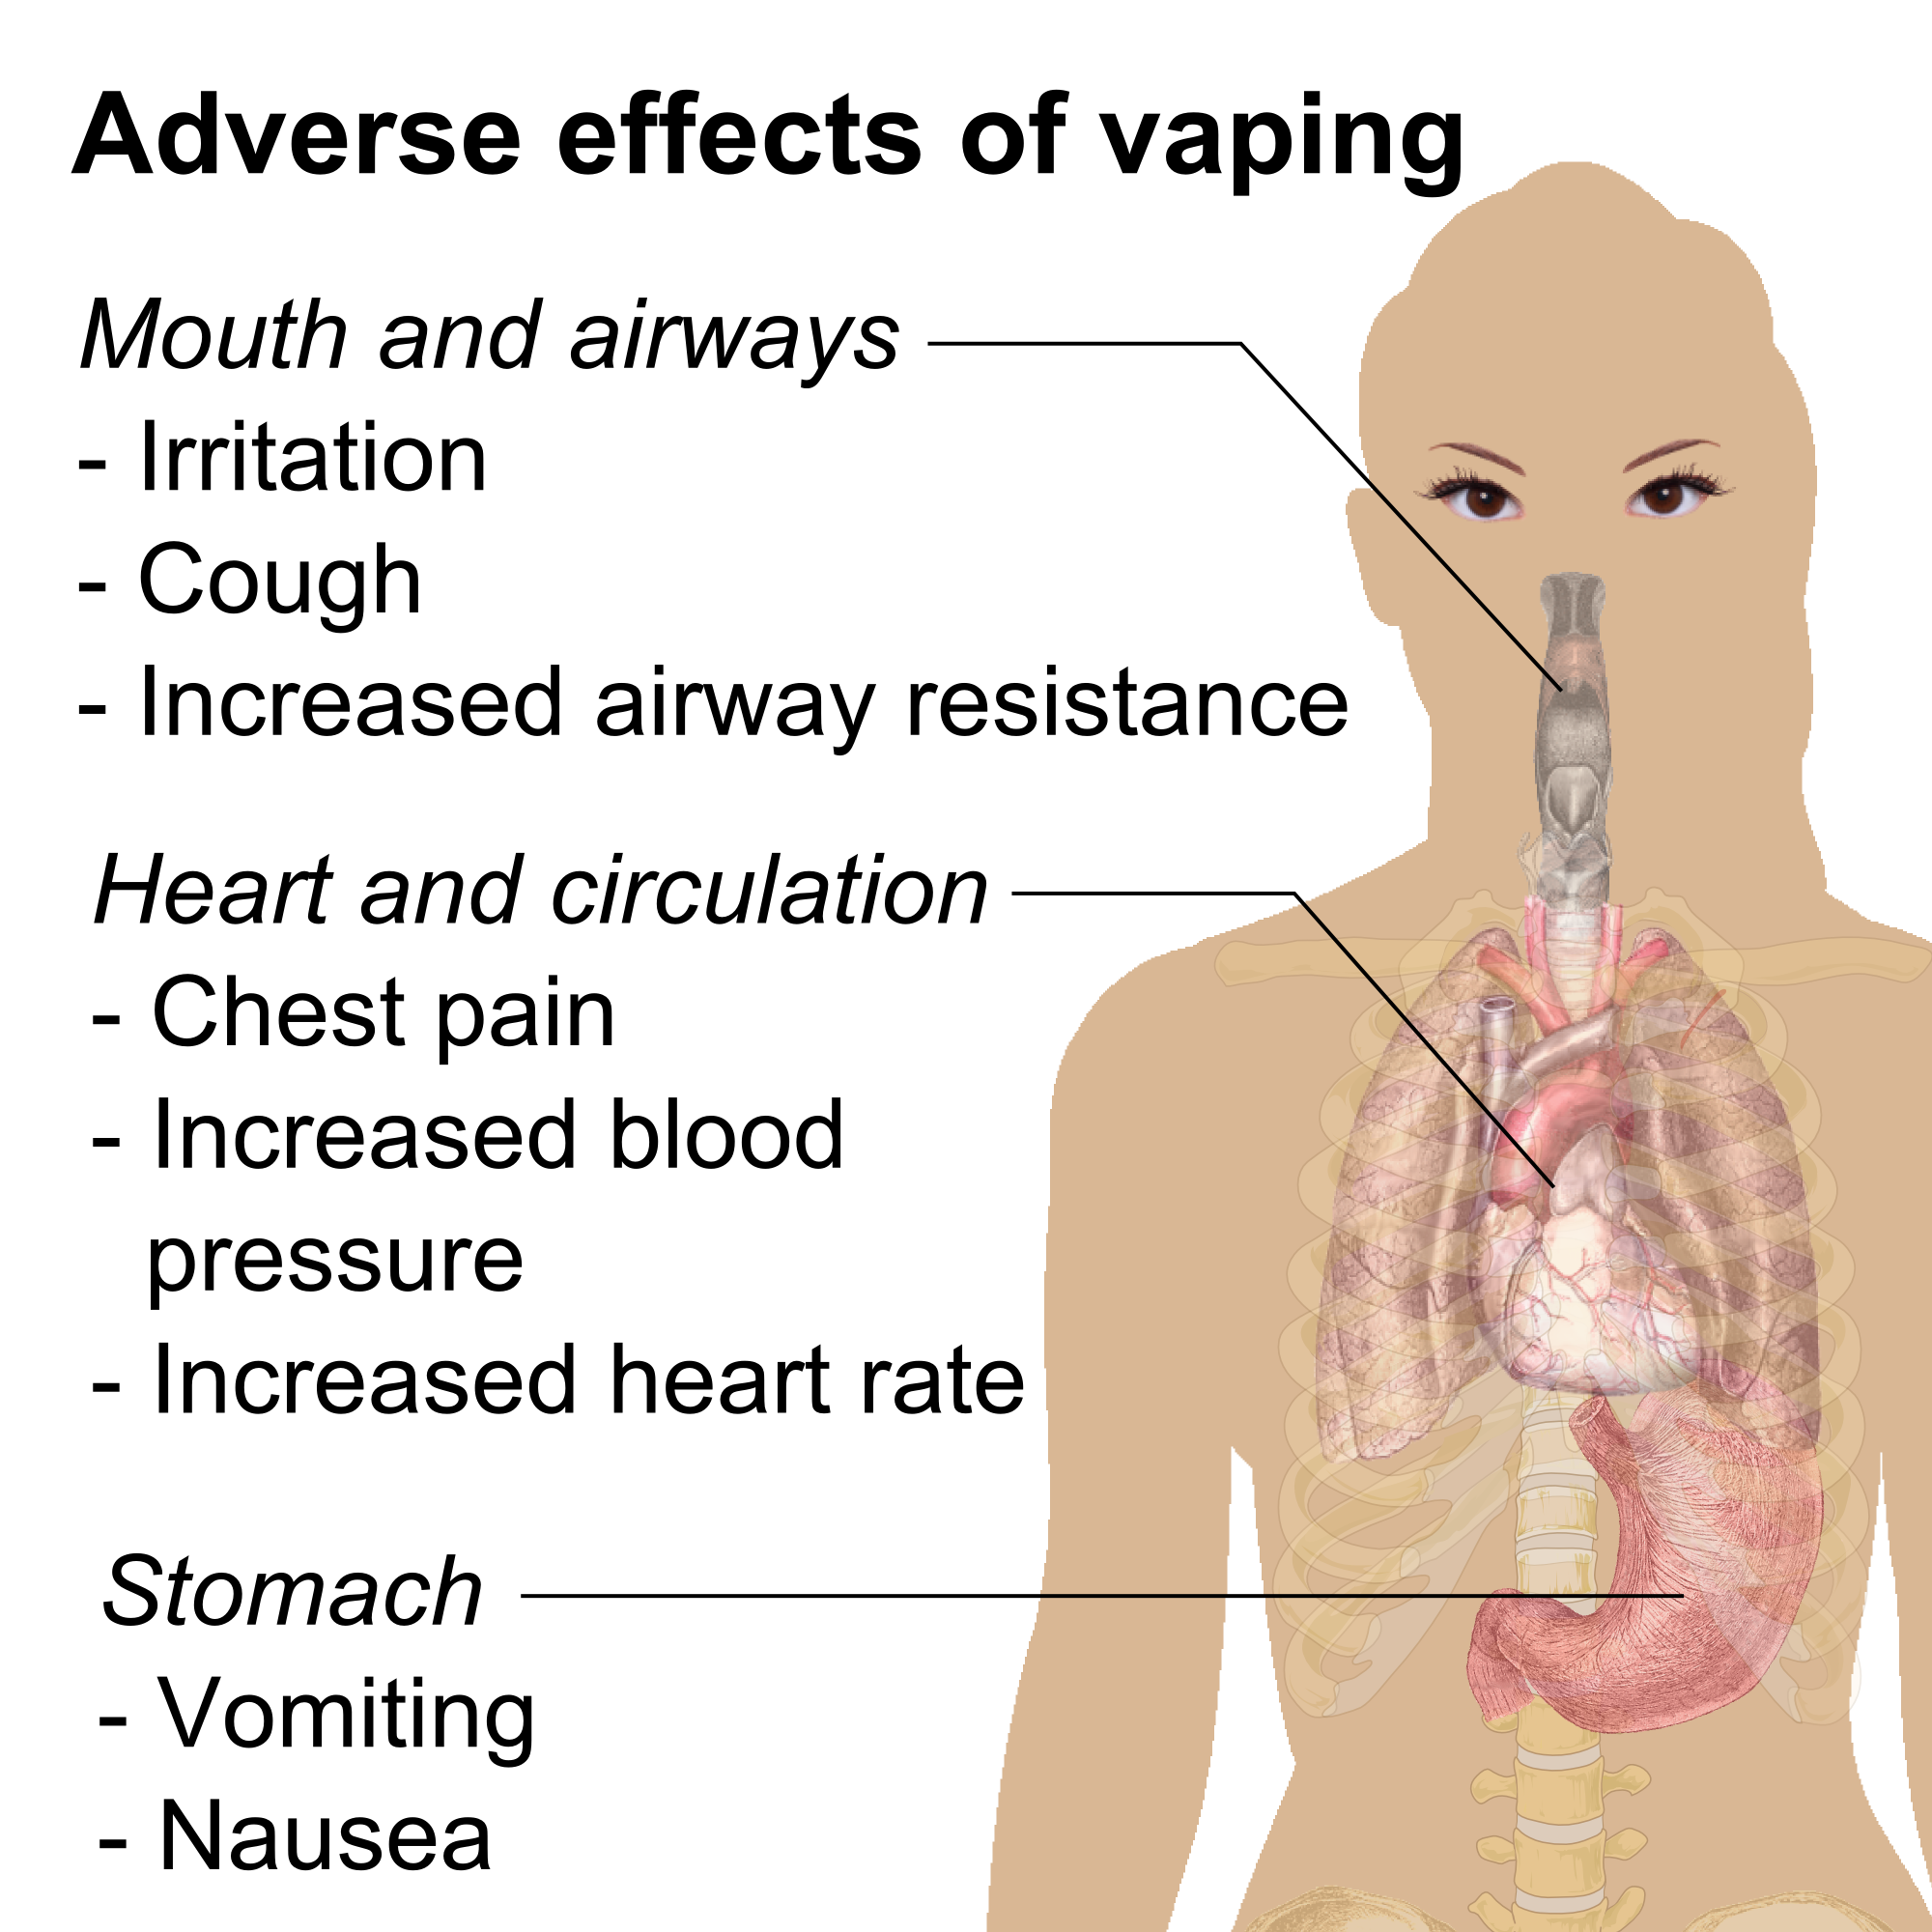 Side effects and risks of vaping